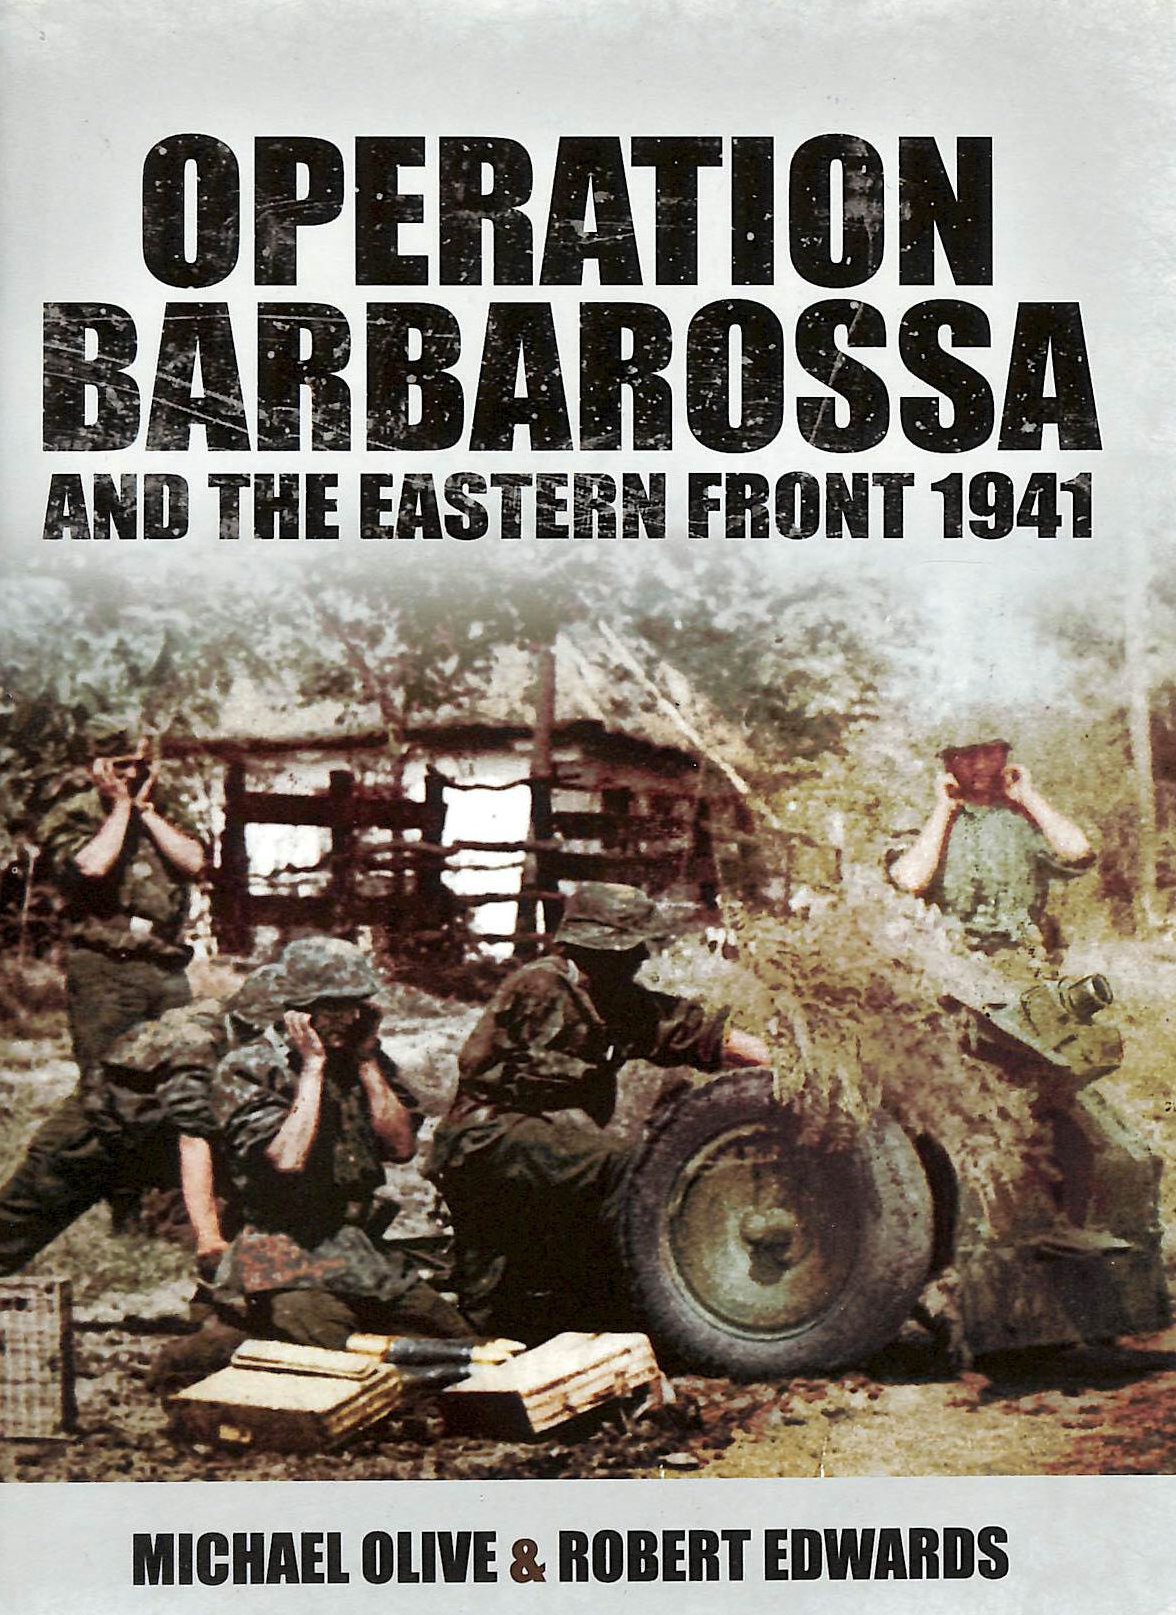 Image for Operation Barbarossa and the Eastern Front 1941 by Edwards, Robert ( Author ) ON Apr-19-2012, Hardback